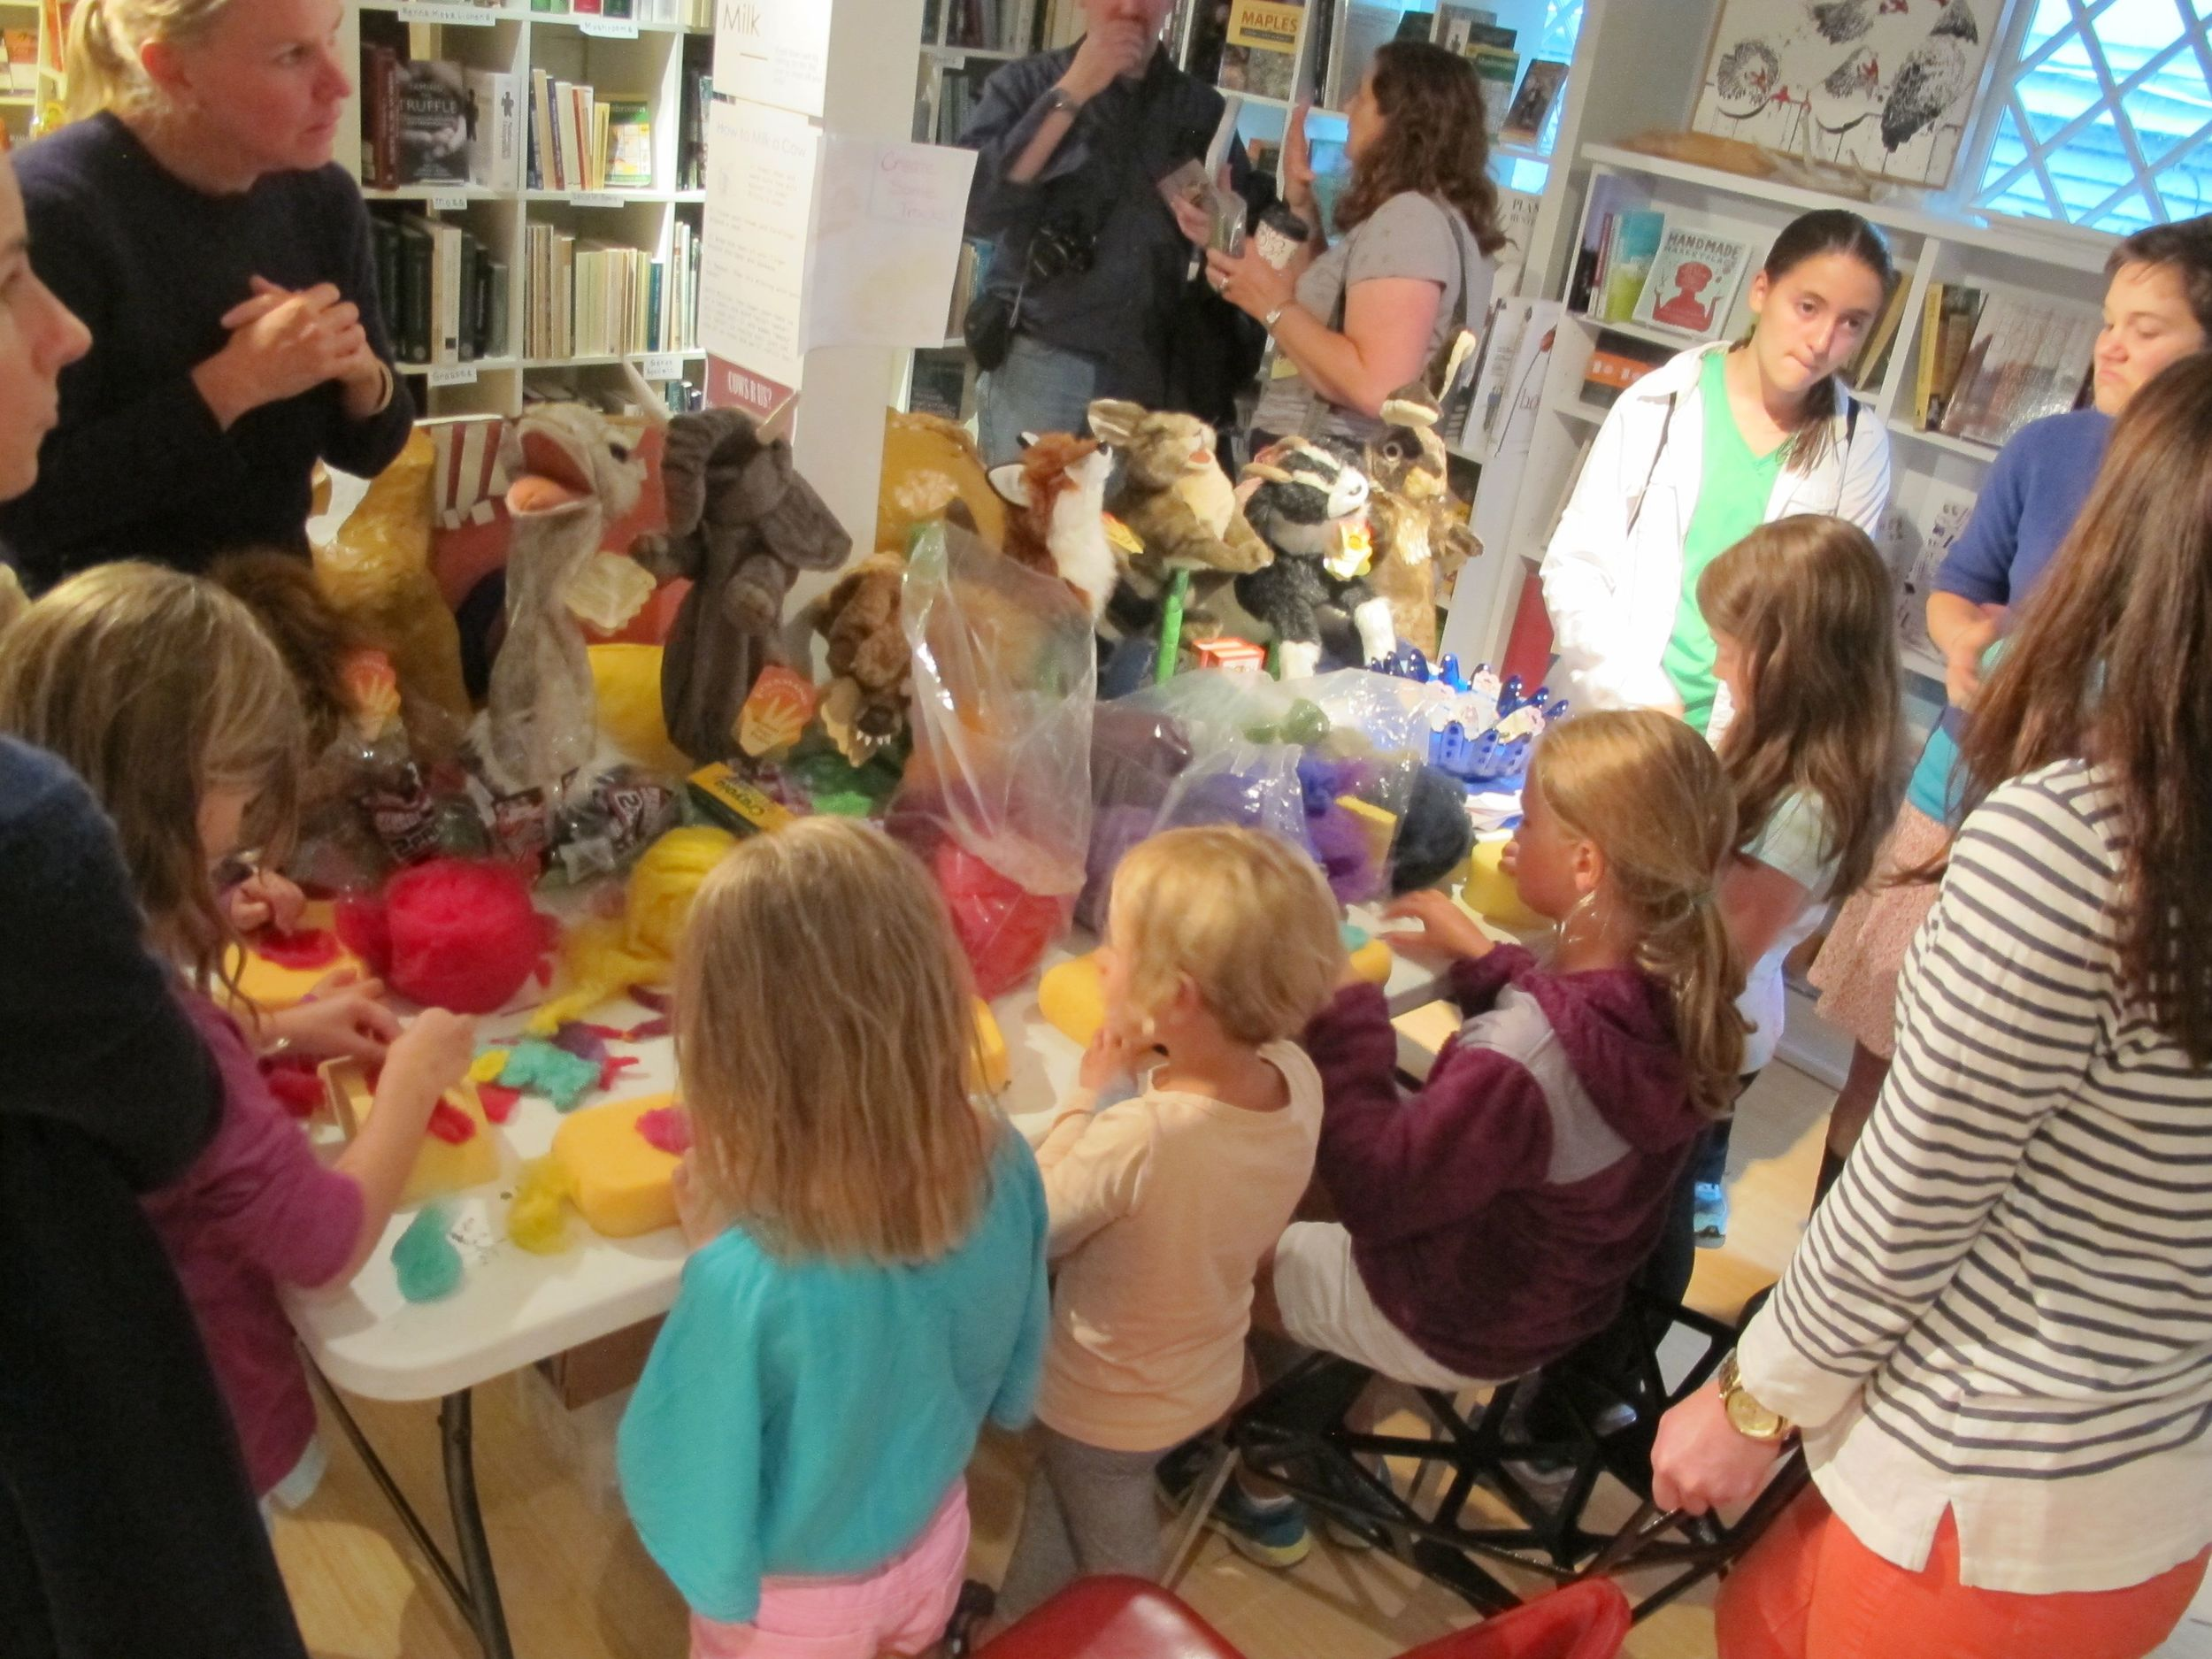 Robin led needle-felting workshops last summer at which children created ocean animals to help us build a healthy coral reef. She'll do that again as part of her workshop series.